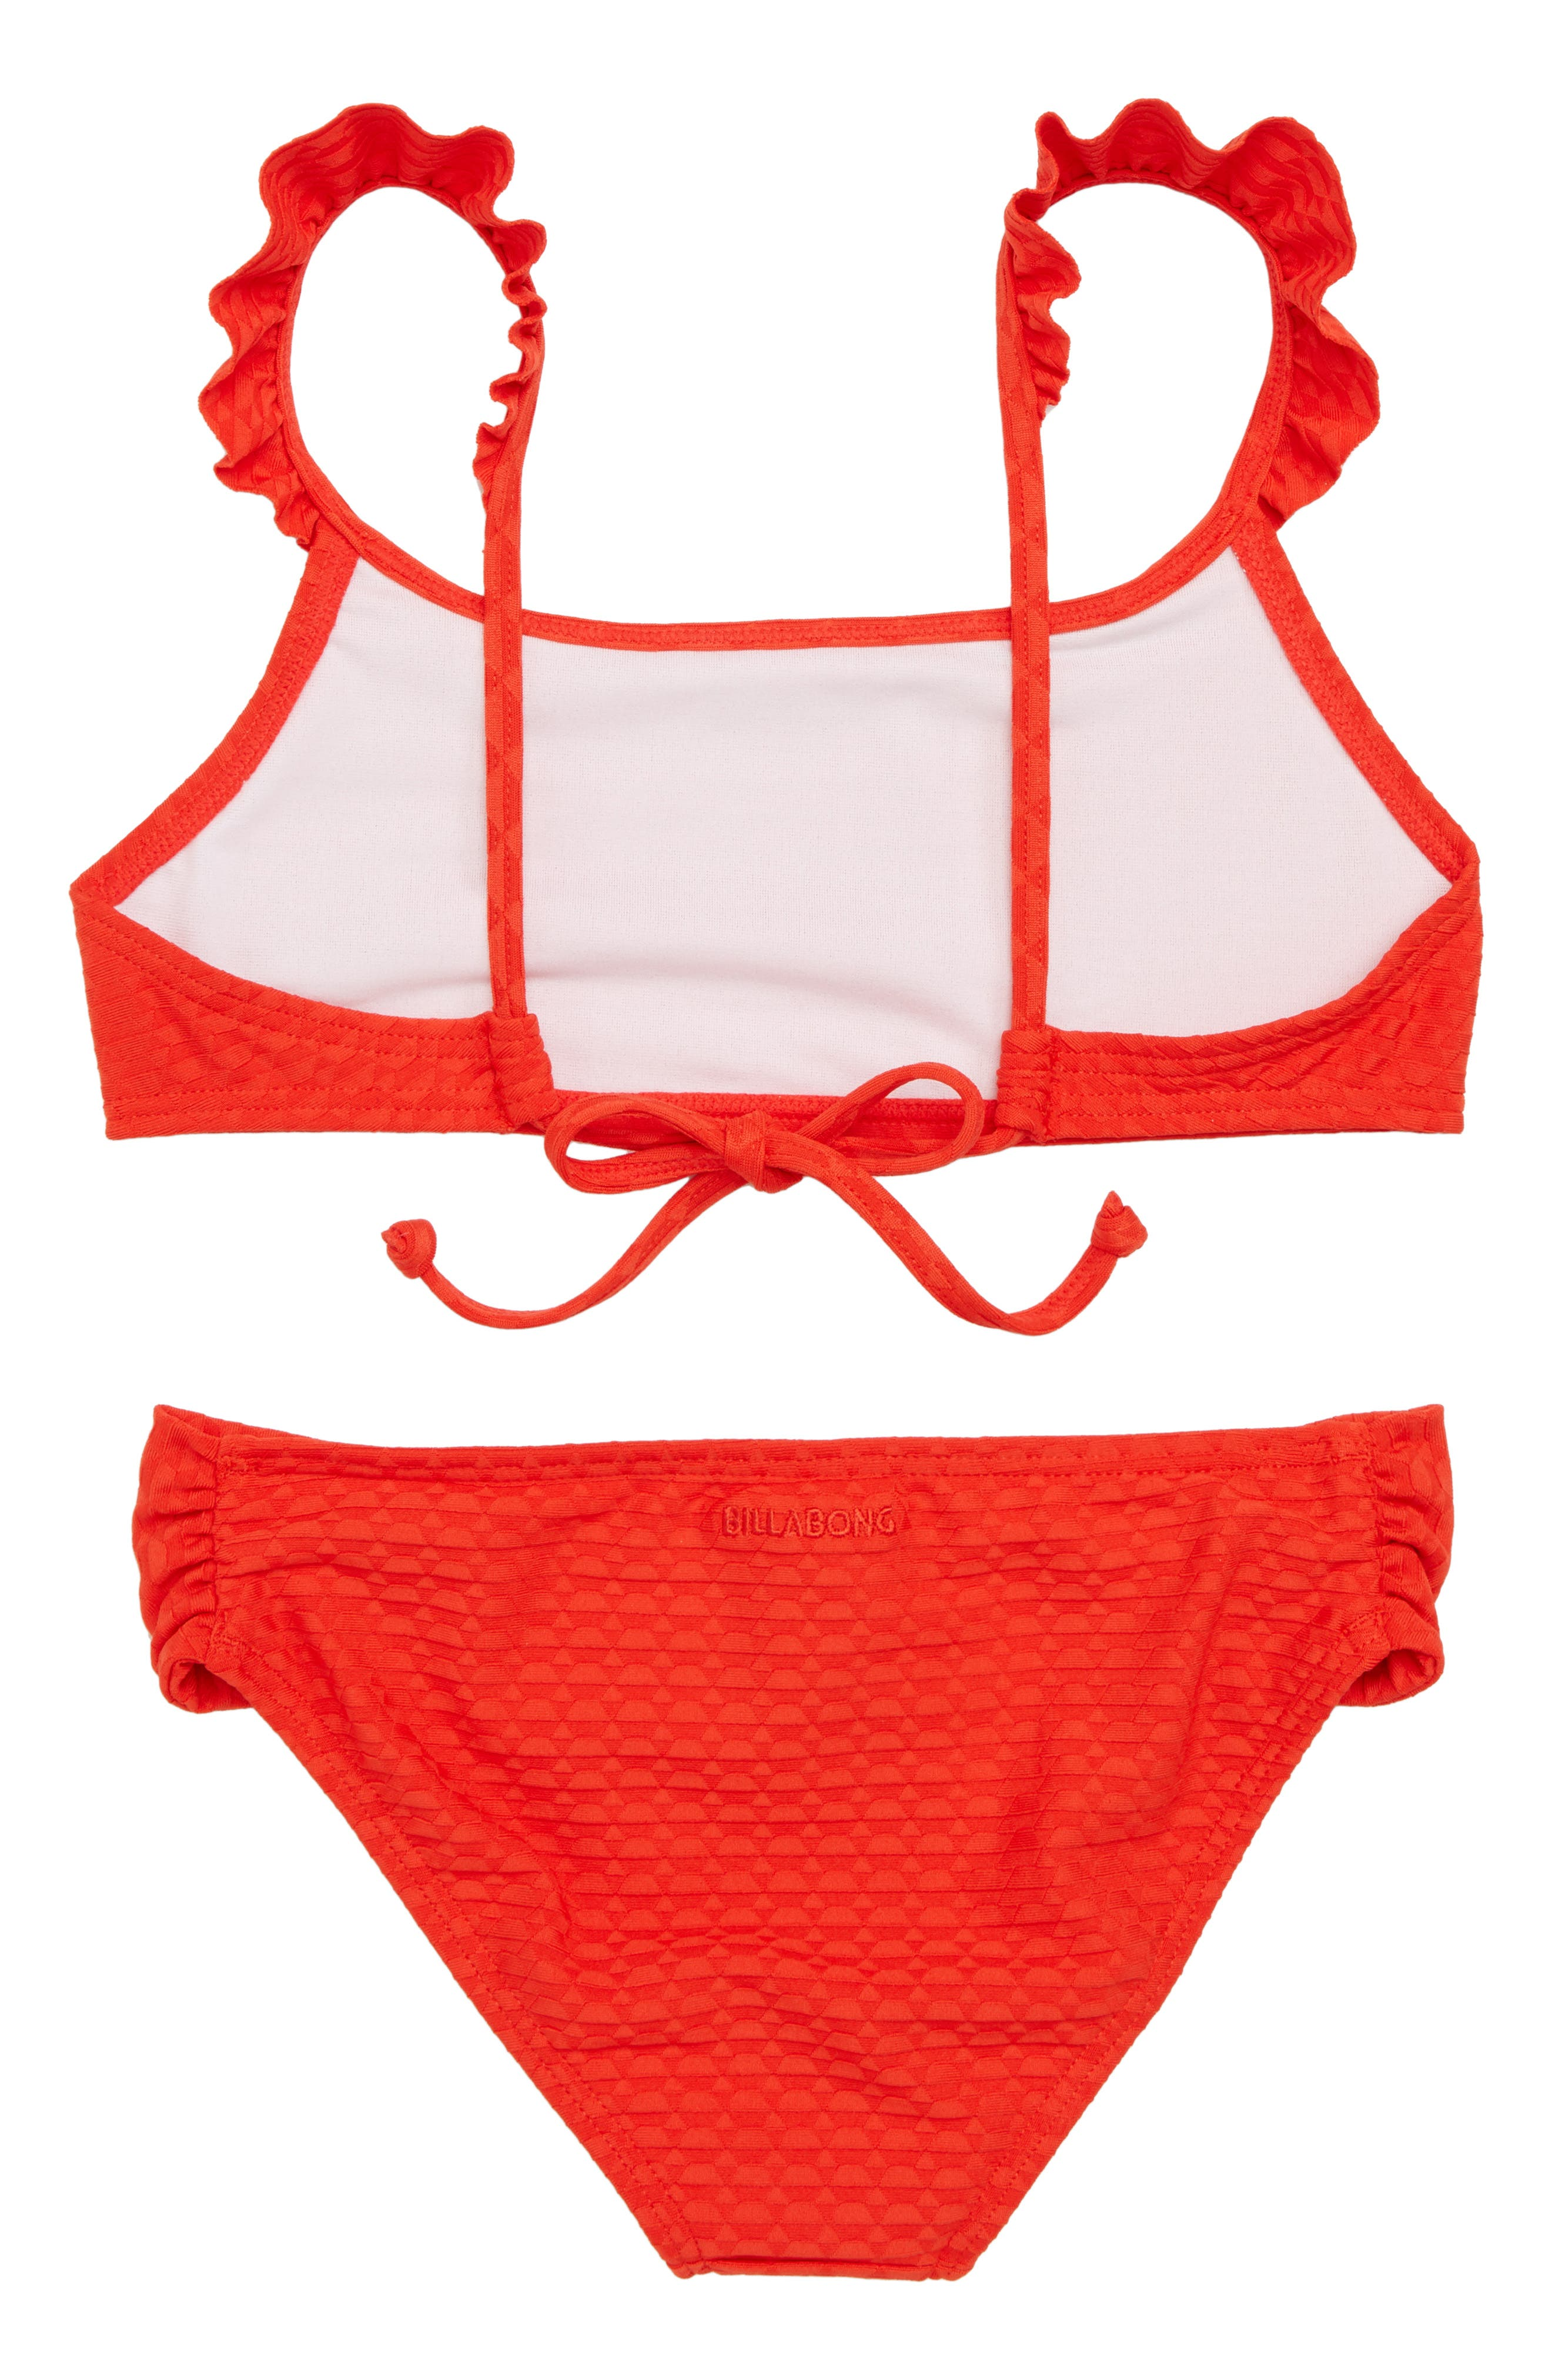 Makin Shapes Two-Piece Swimsuit,                             Alternate thumbnail 2, color,                             951